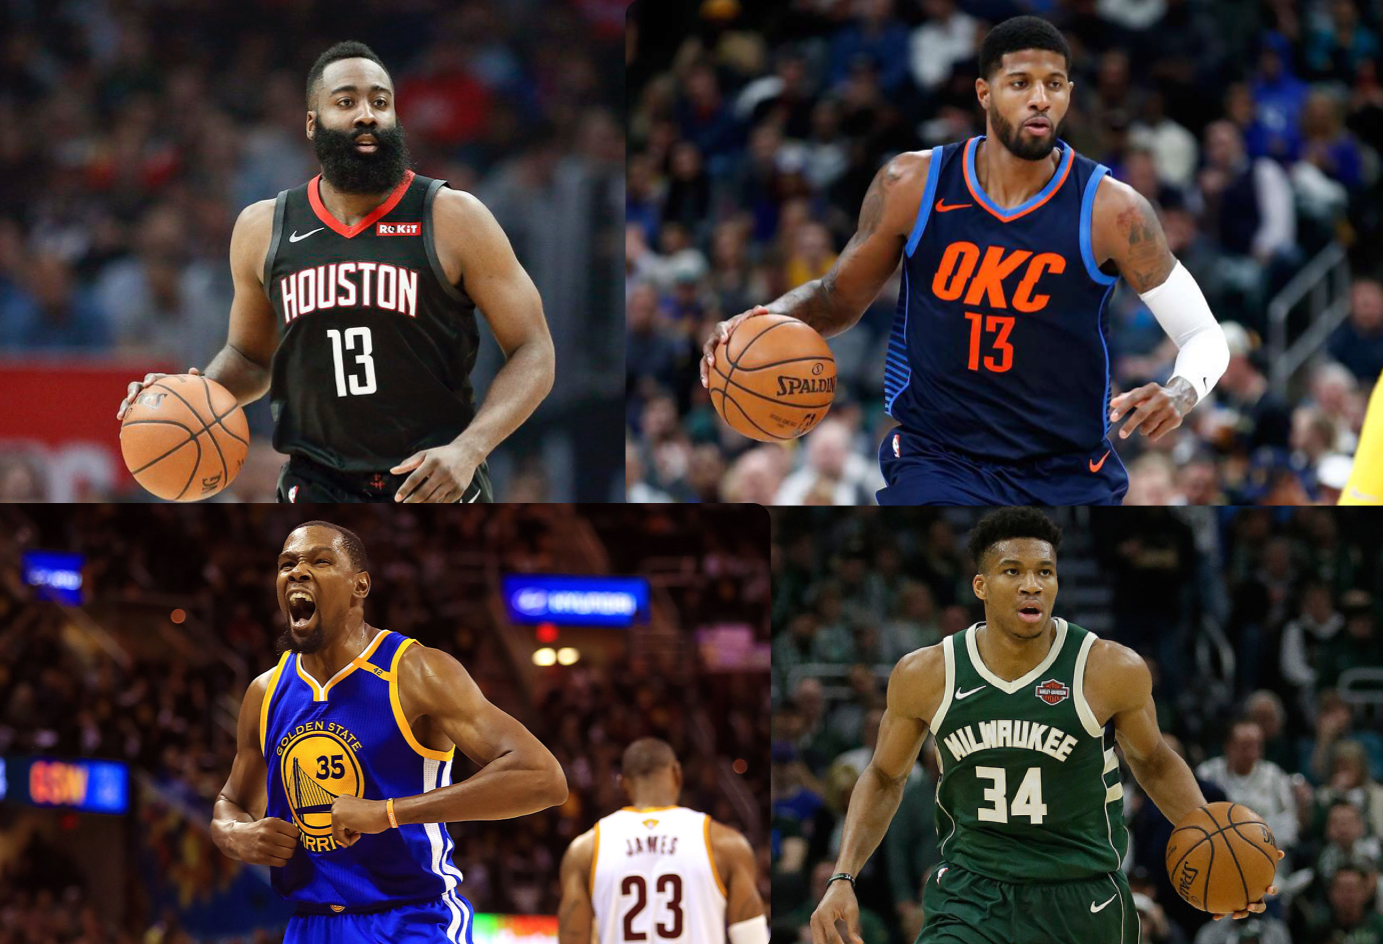 James Harden  (Top Left), Kevin Durant (Bottom Left), Paul George (Top Right), and Giannis Antetokounmpo (Bottom Right), are the four frontrunners for the 2019 NBA MVP award, and each is more than equipped with all the tools necessary to even be considered for the honor.